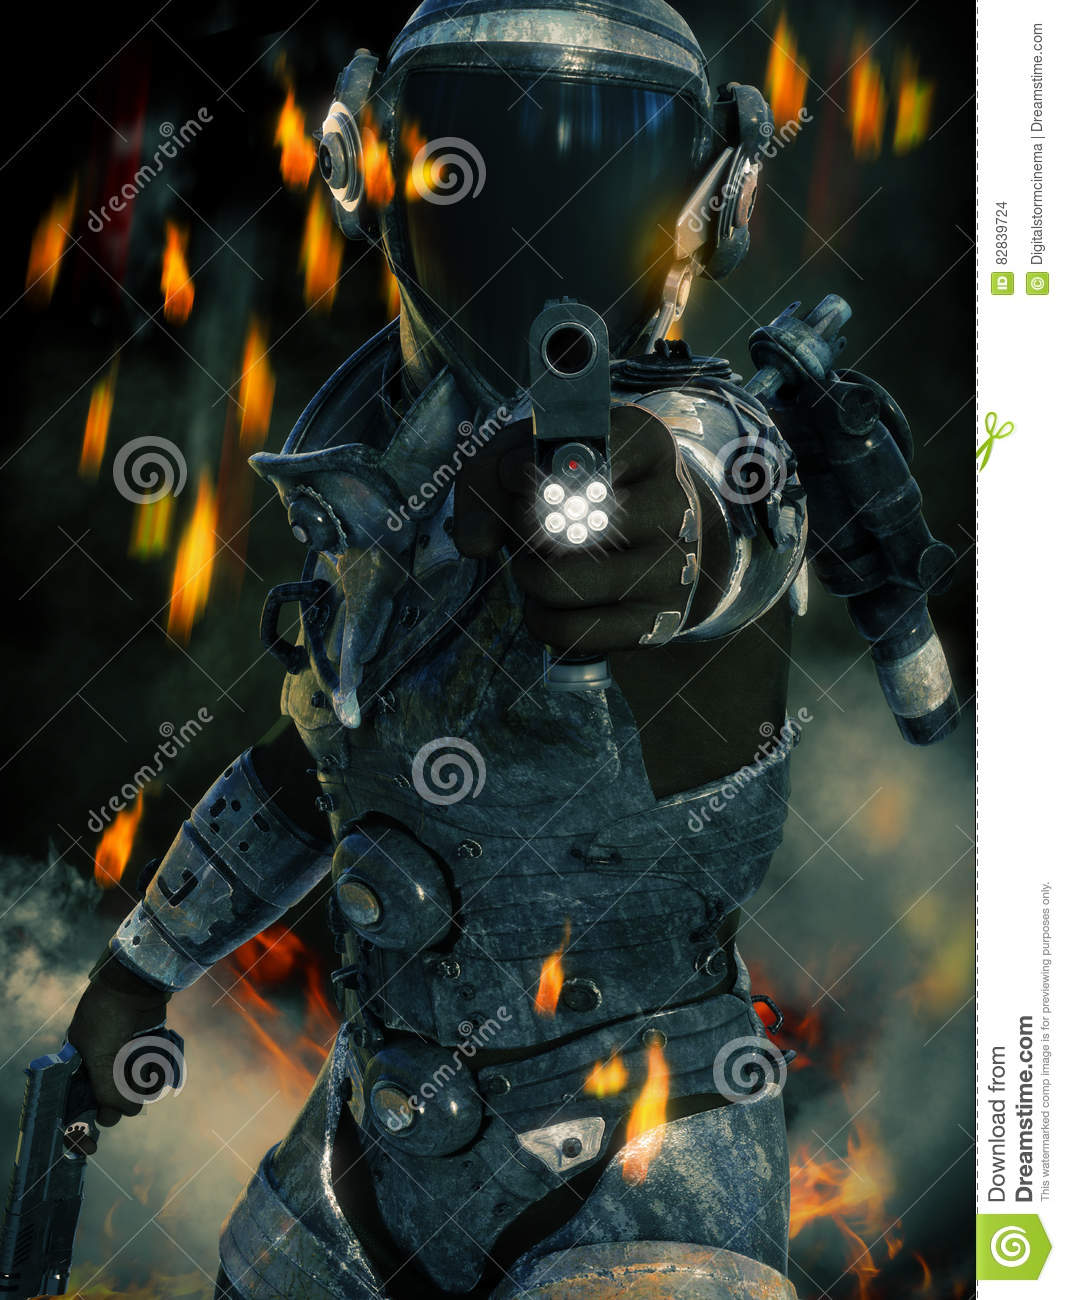 Space Marine in action aiming his weapon at the camera with sparks, smoke and fire in the background.